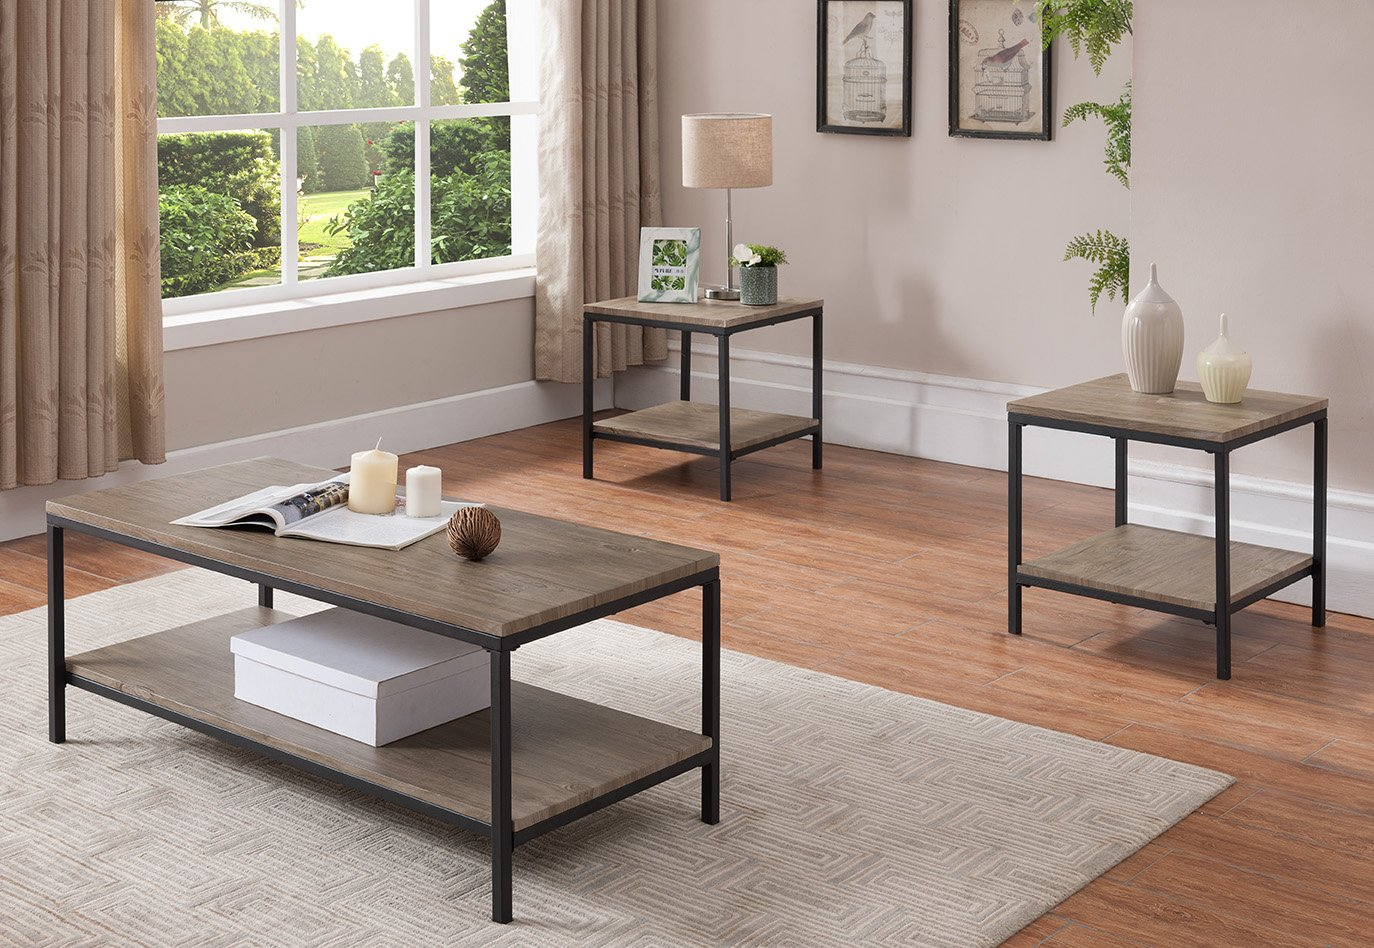 Kings Brand 3 Piece Gray / Black Occasional Table Set, Coffee Table & 2 End Tables by Kings Brand Furniture (Image #1)